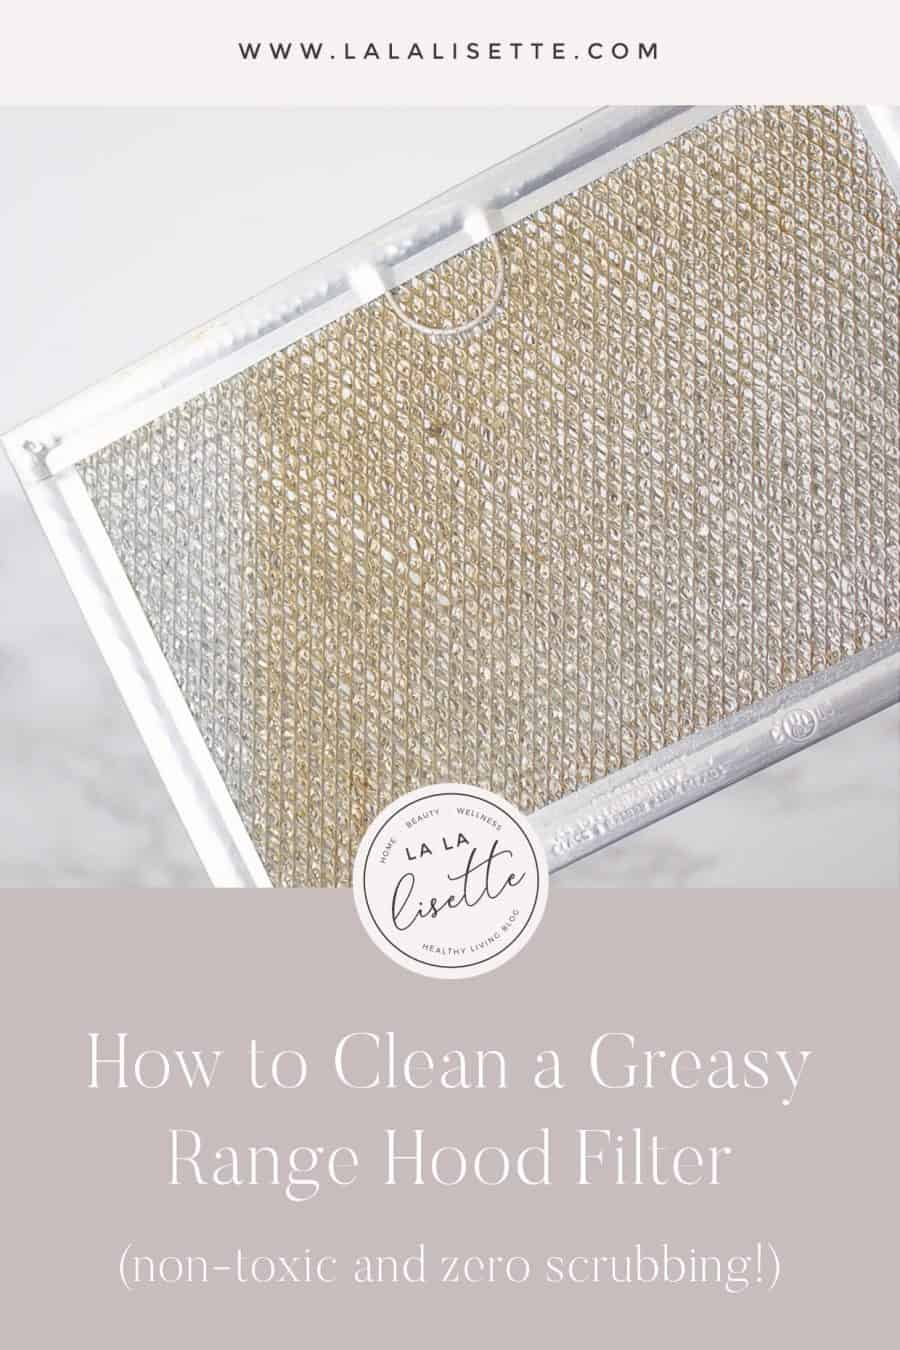 greasy range hood filter with text: How to Clean a Greasy Range Hood Filter